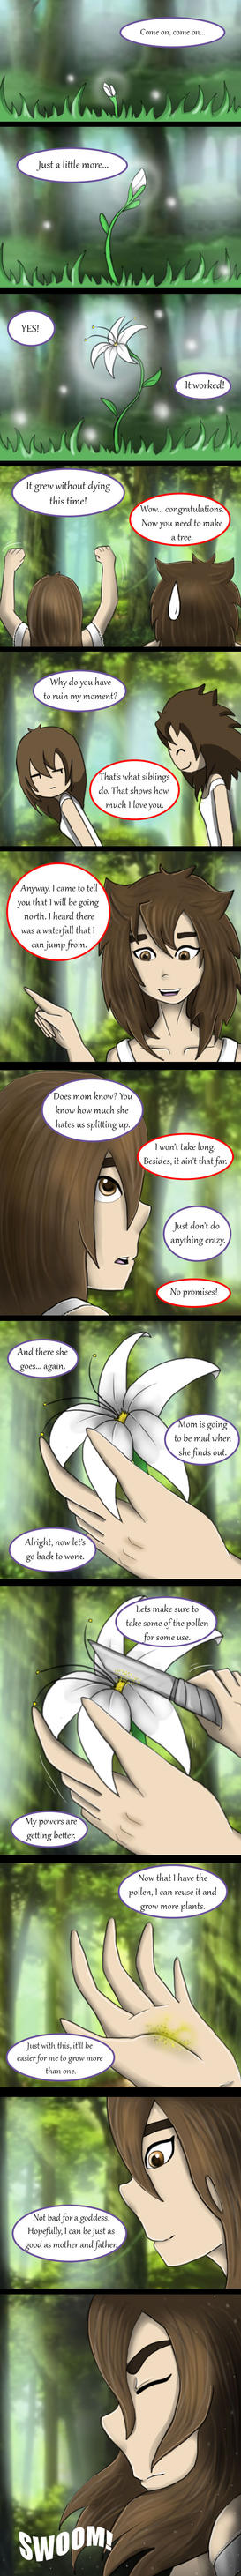 Forbiddentale page 27 by joselyn565